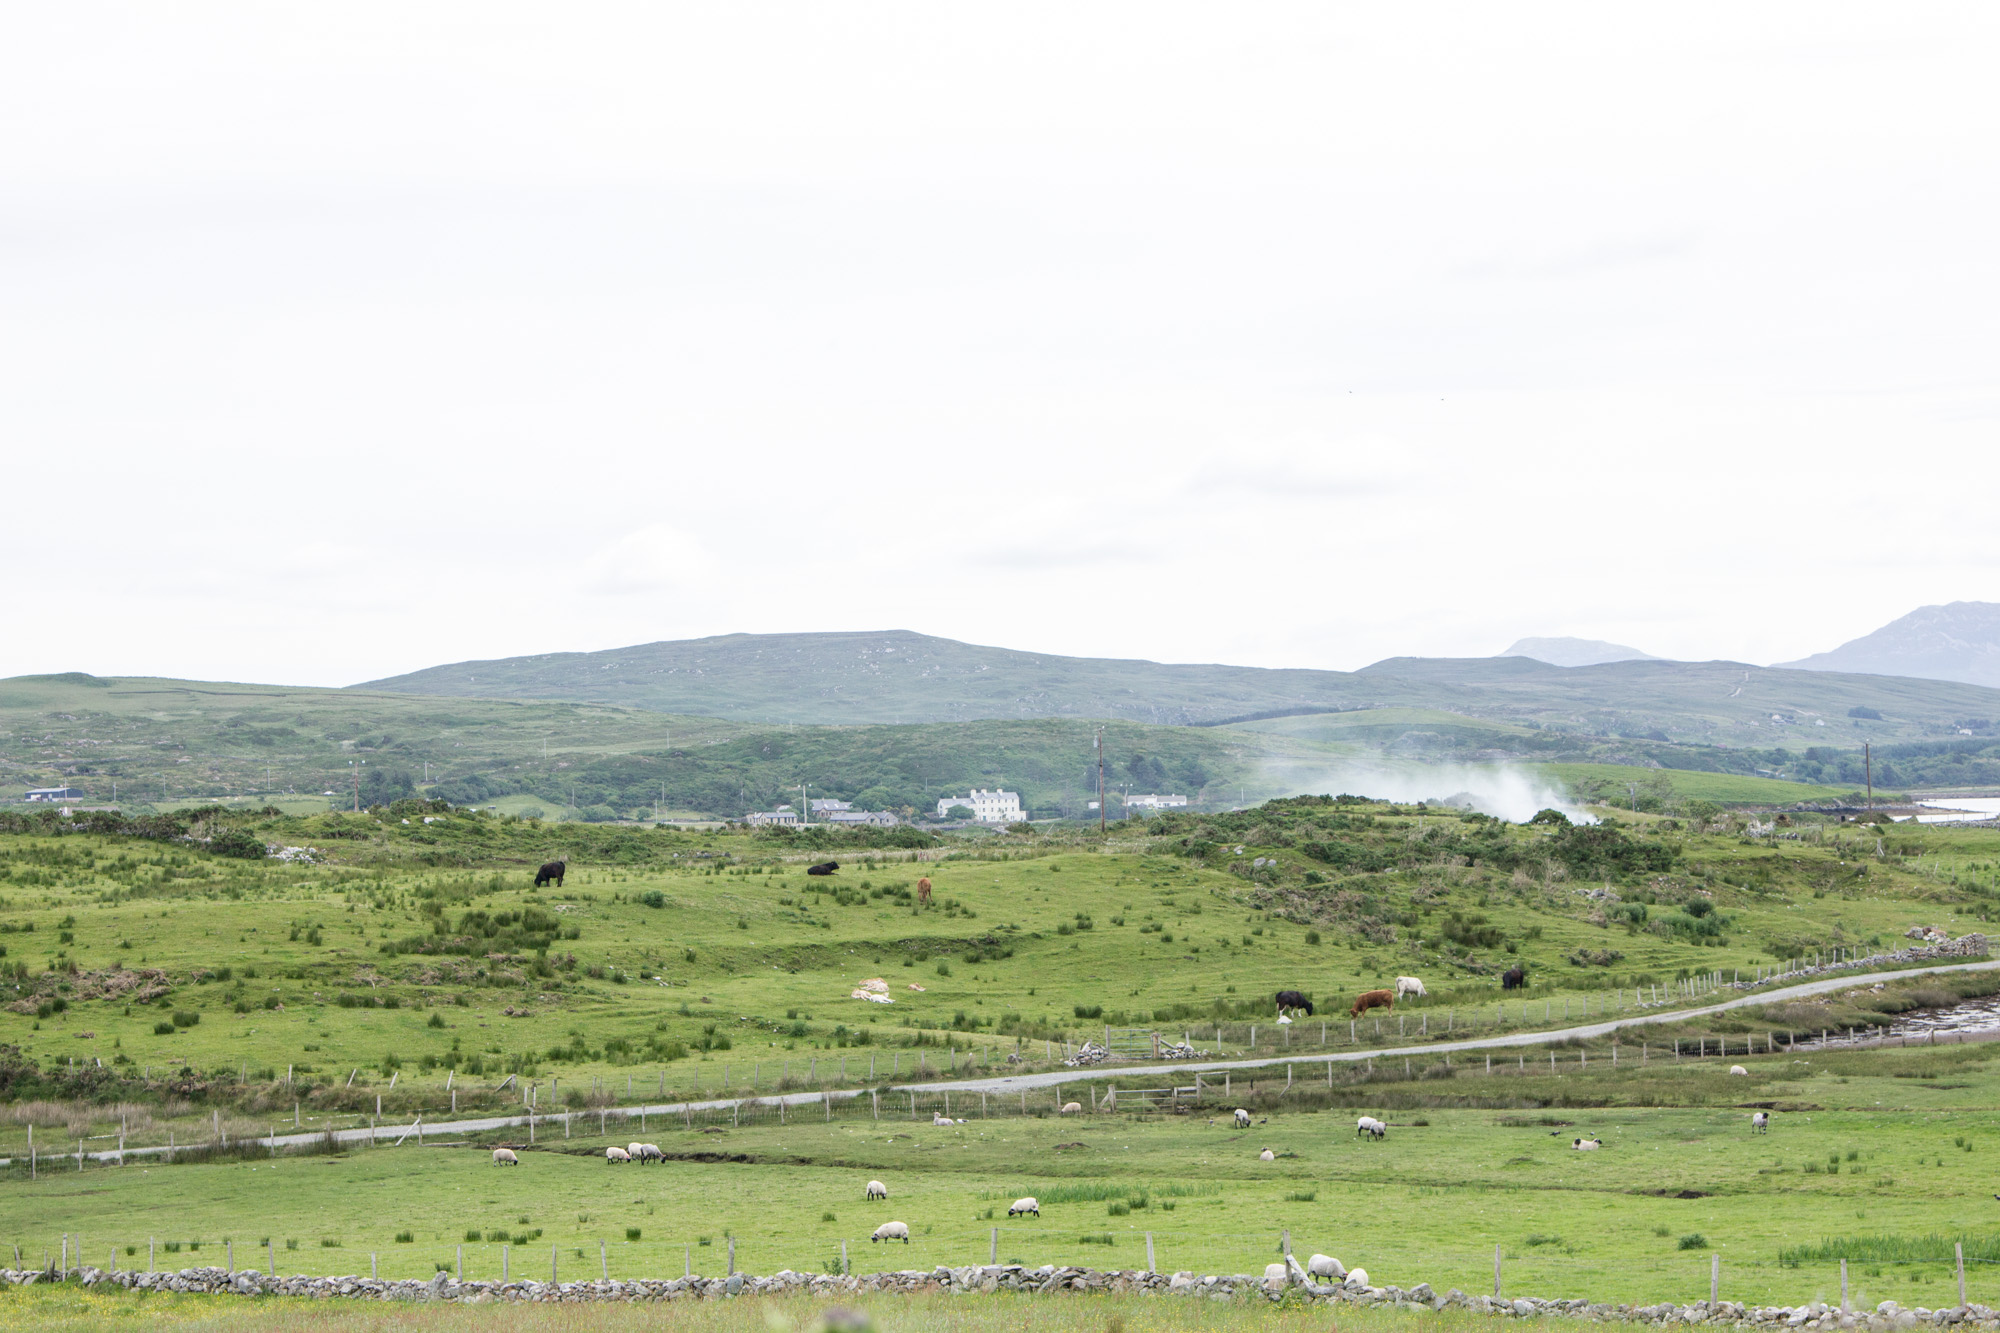 The Sky Loop Drive in Ireland is in the countryside, with green hills, cute houses, and pastures full of sheep and cows